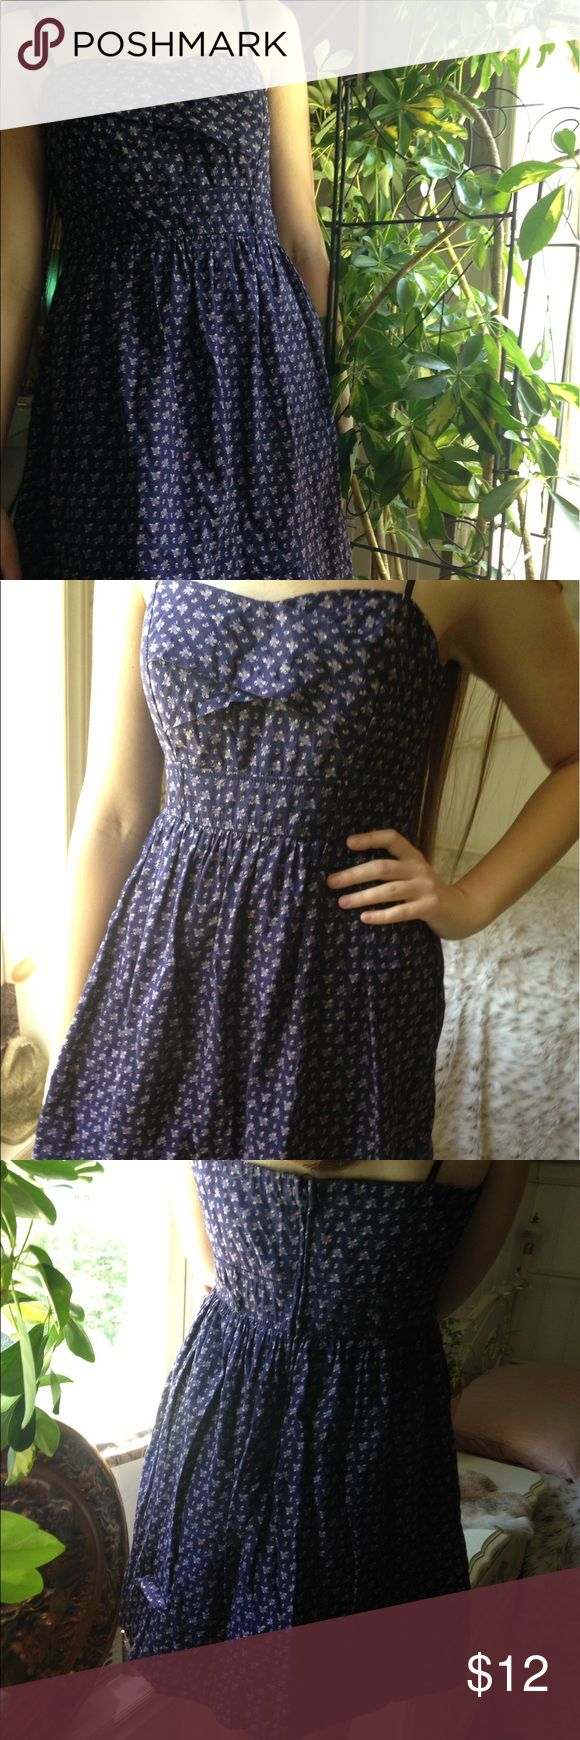 City Triangles | Navy Floral Sundress | Size 9 Very sweet little cotton dress. Has a padded bra insert in the top. Belt loops. And is lined in the skirt. Size 9. Fits a medium as well. Thank you for looking! City Triangles Dresses Mini